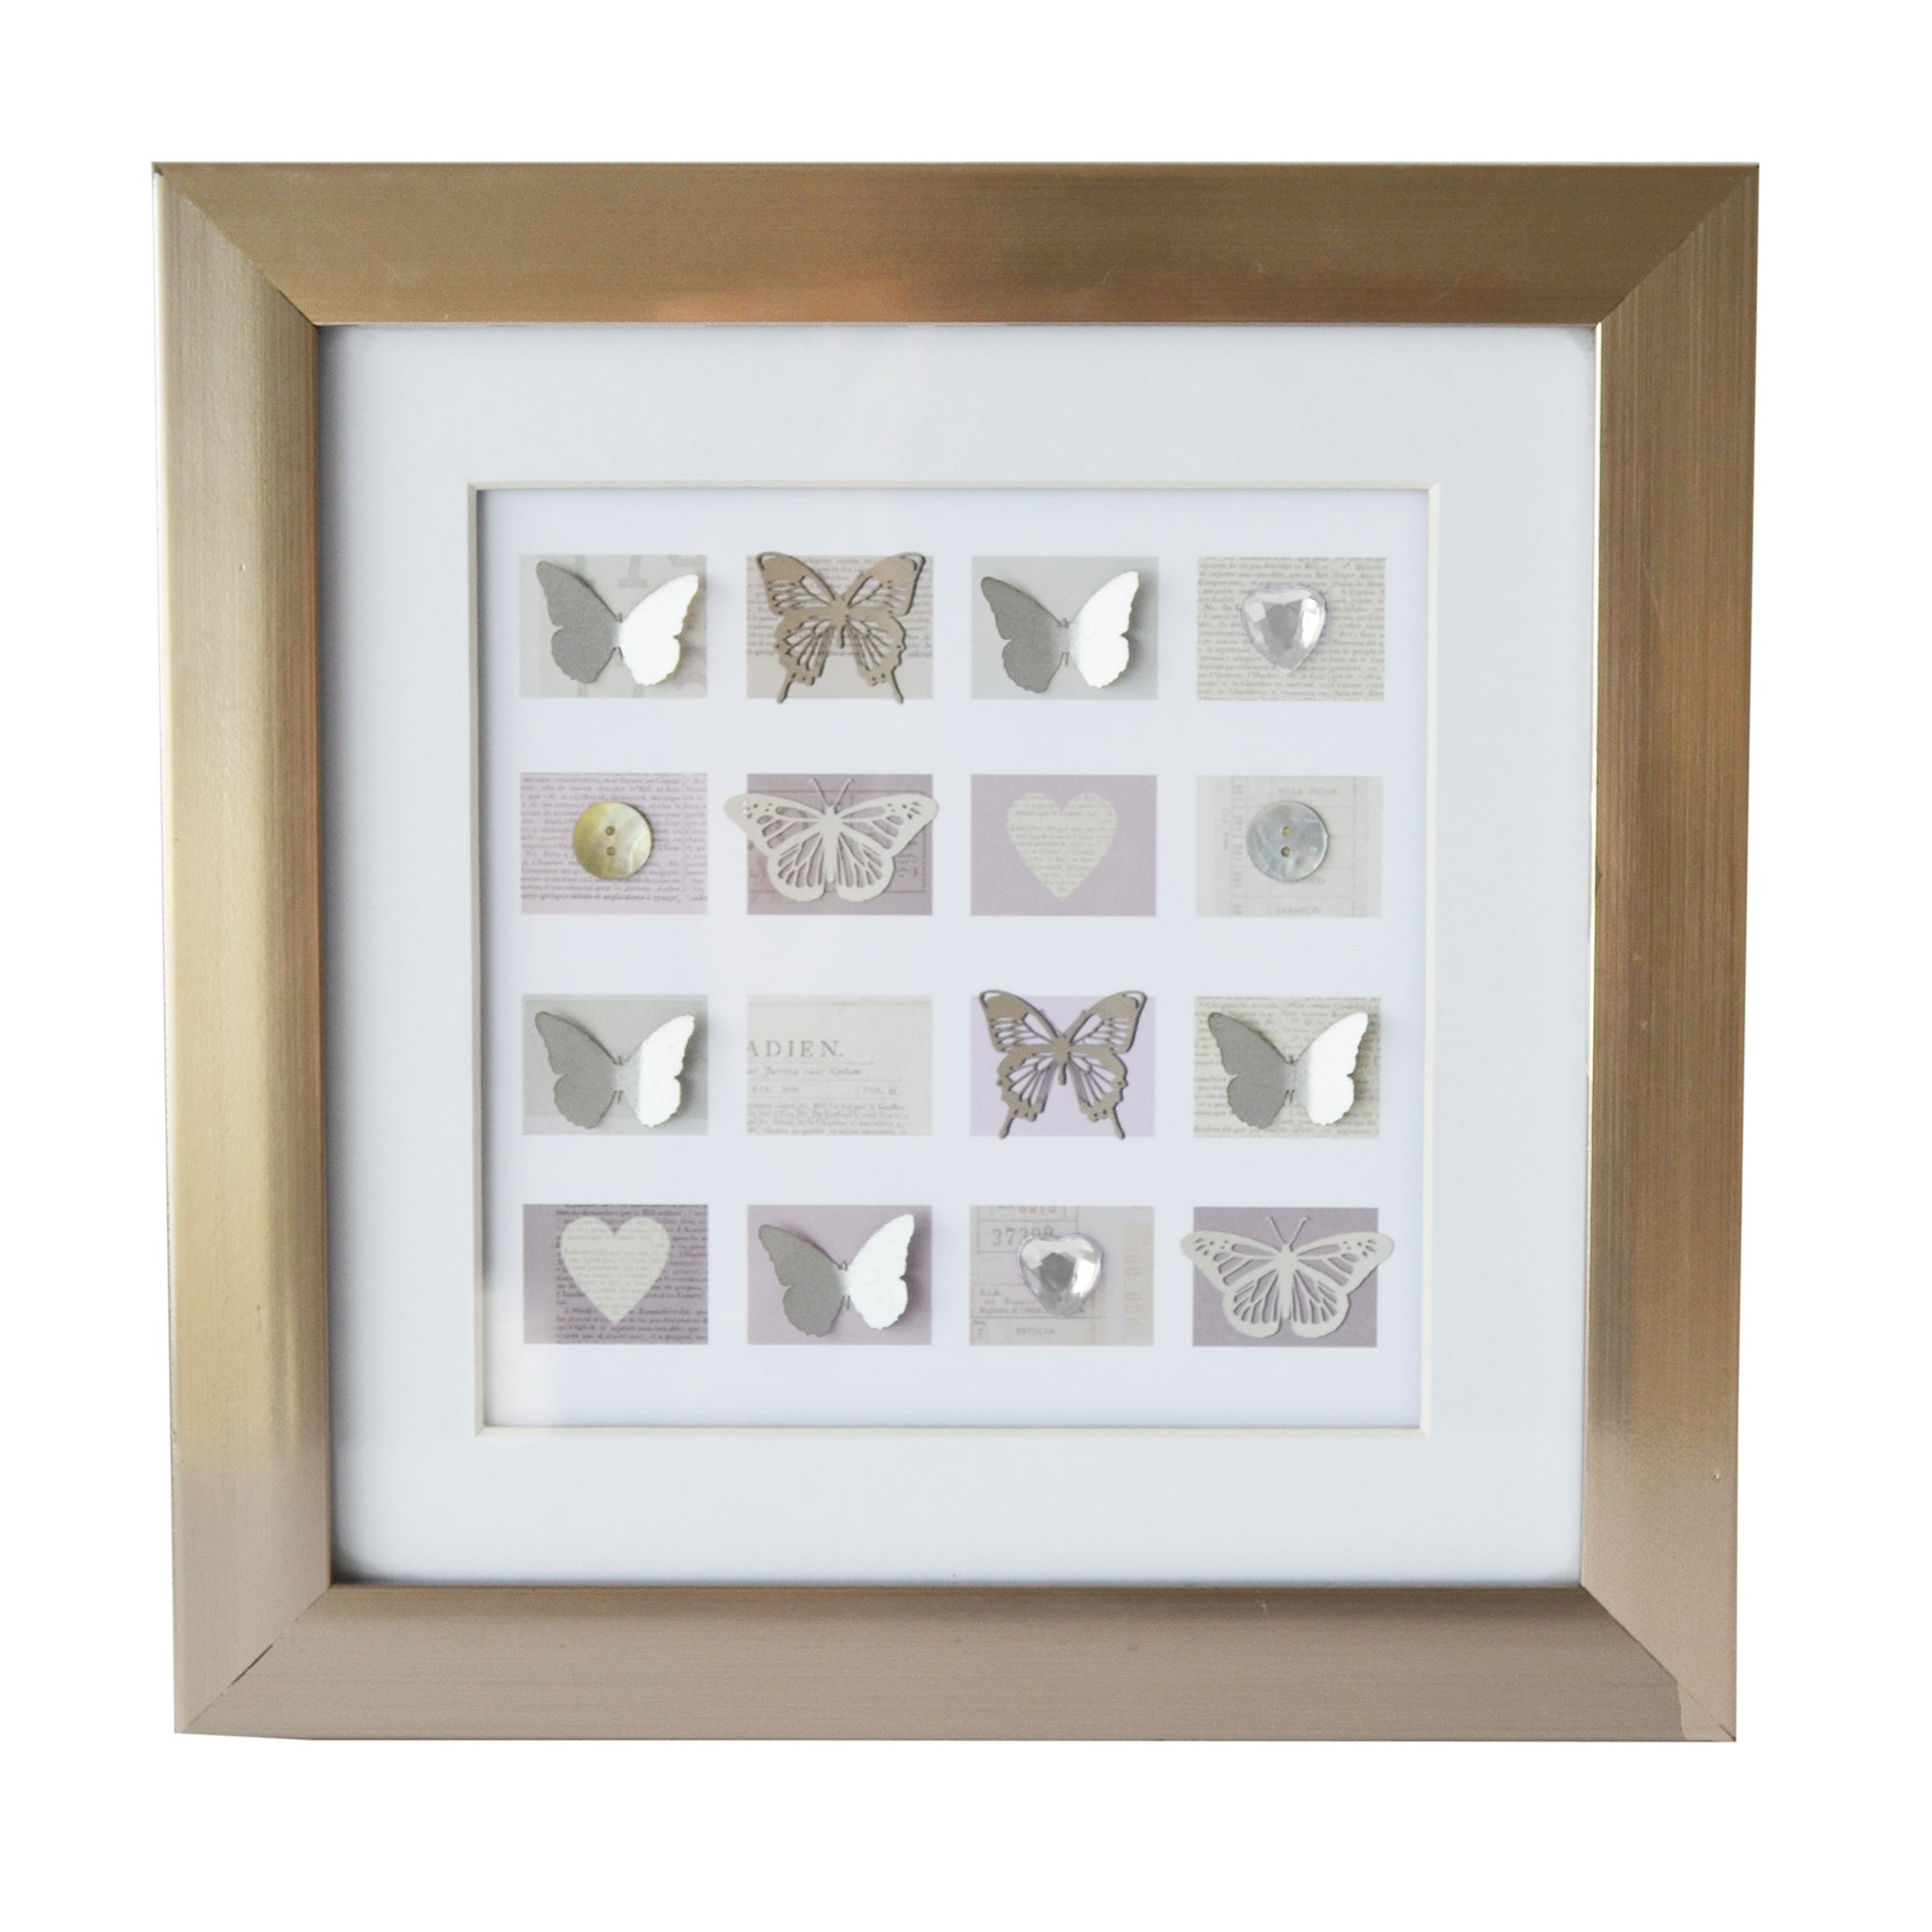 Framed Butterfly and Jewel Wall Art